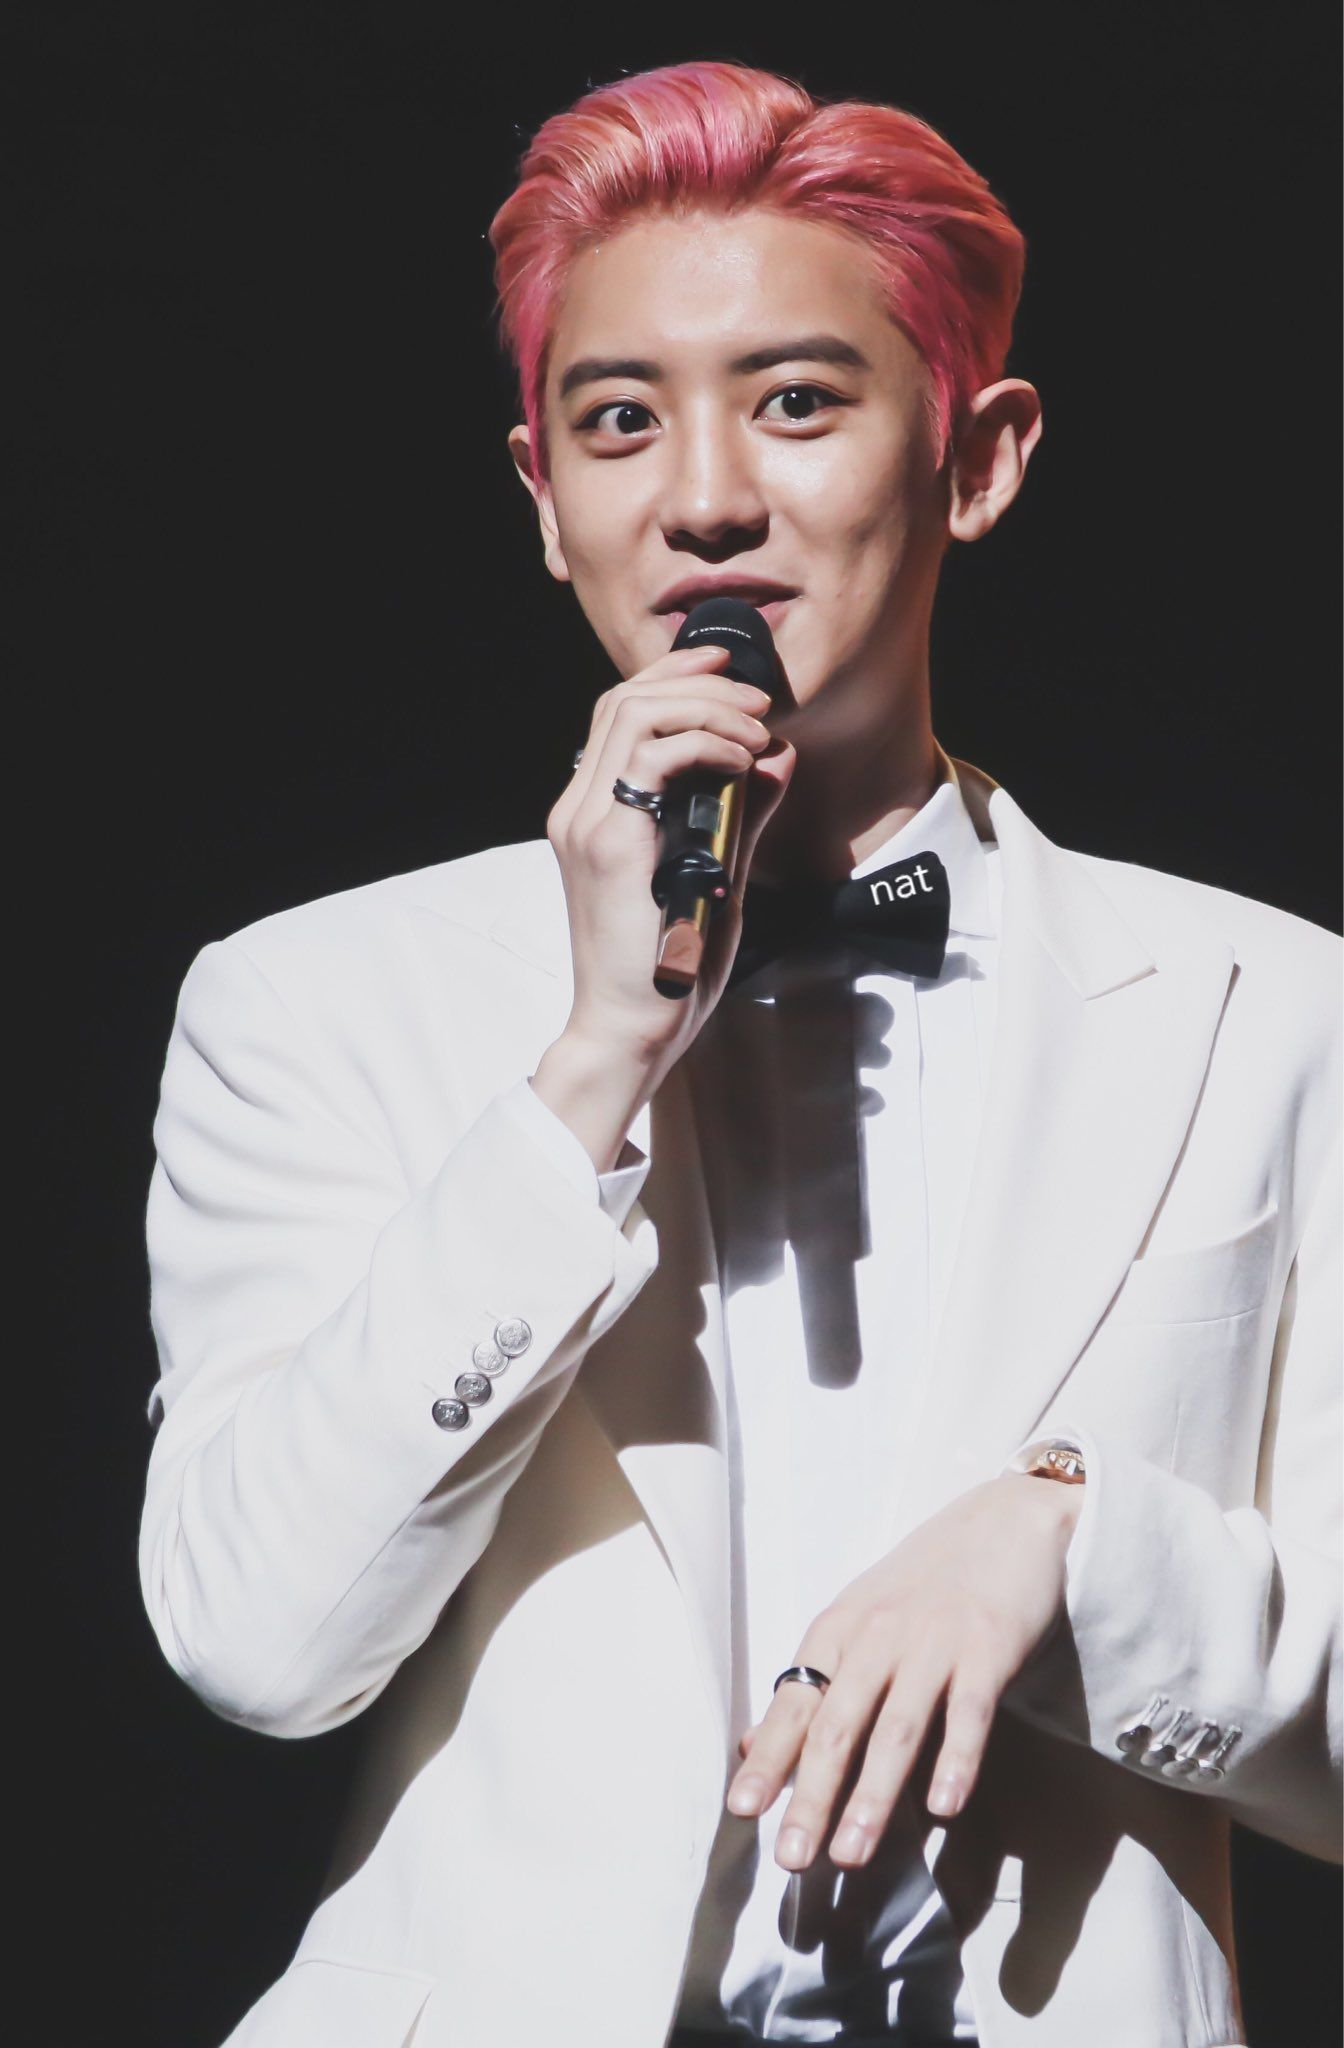 Chanyeol [HQ] 191126 Birthday Party EXO in 2020